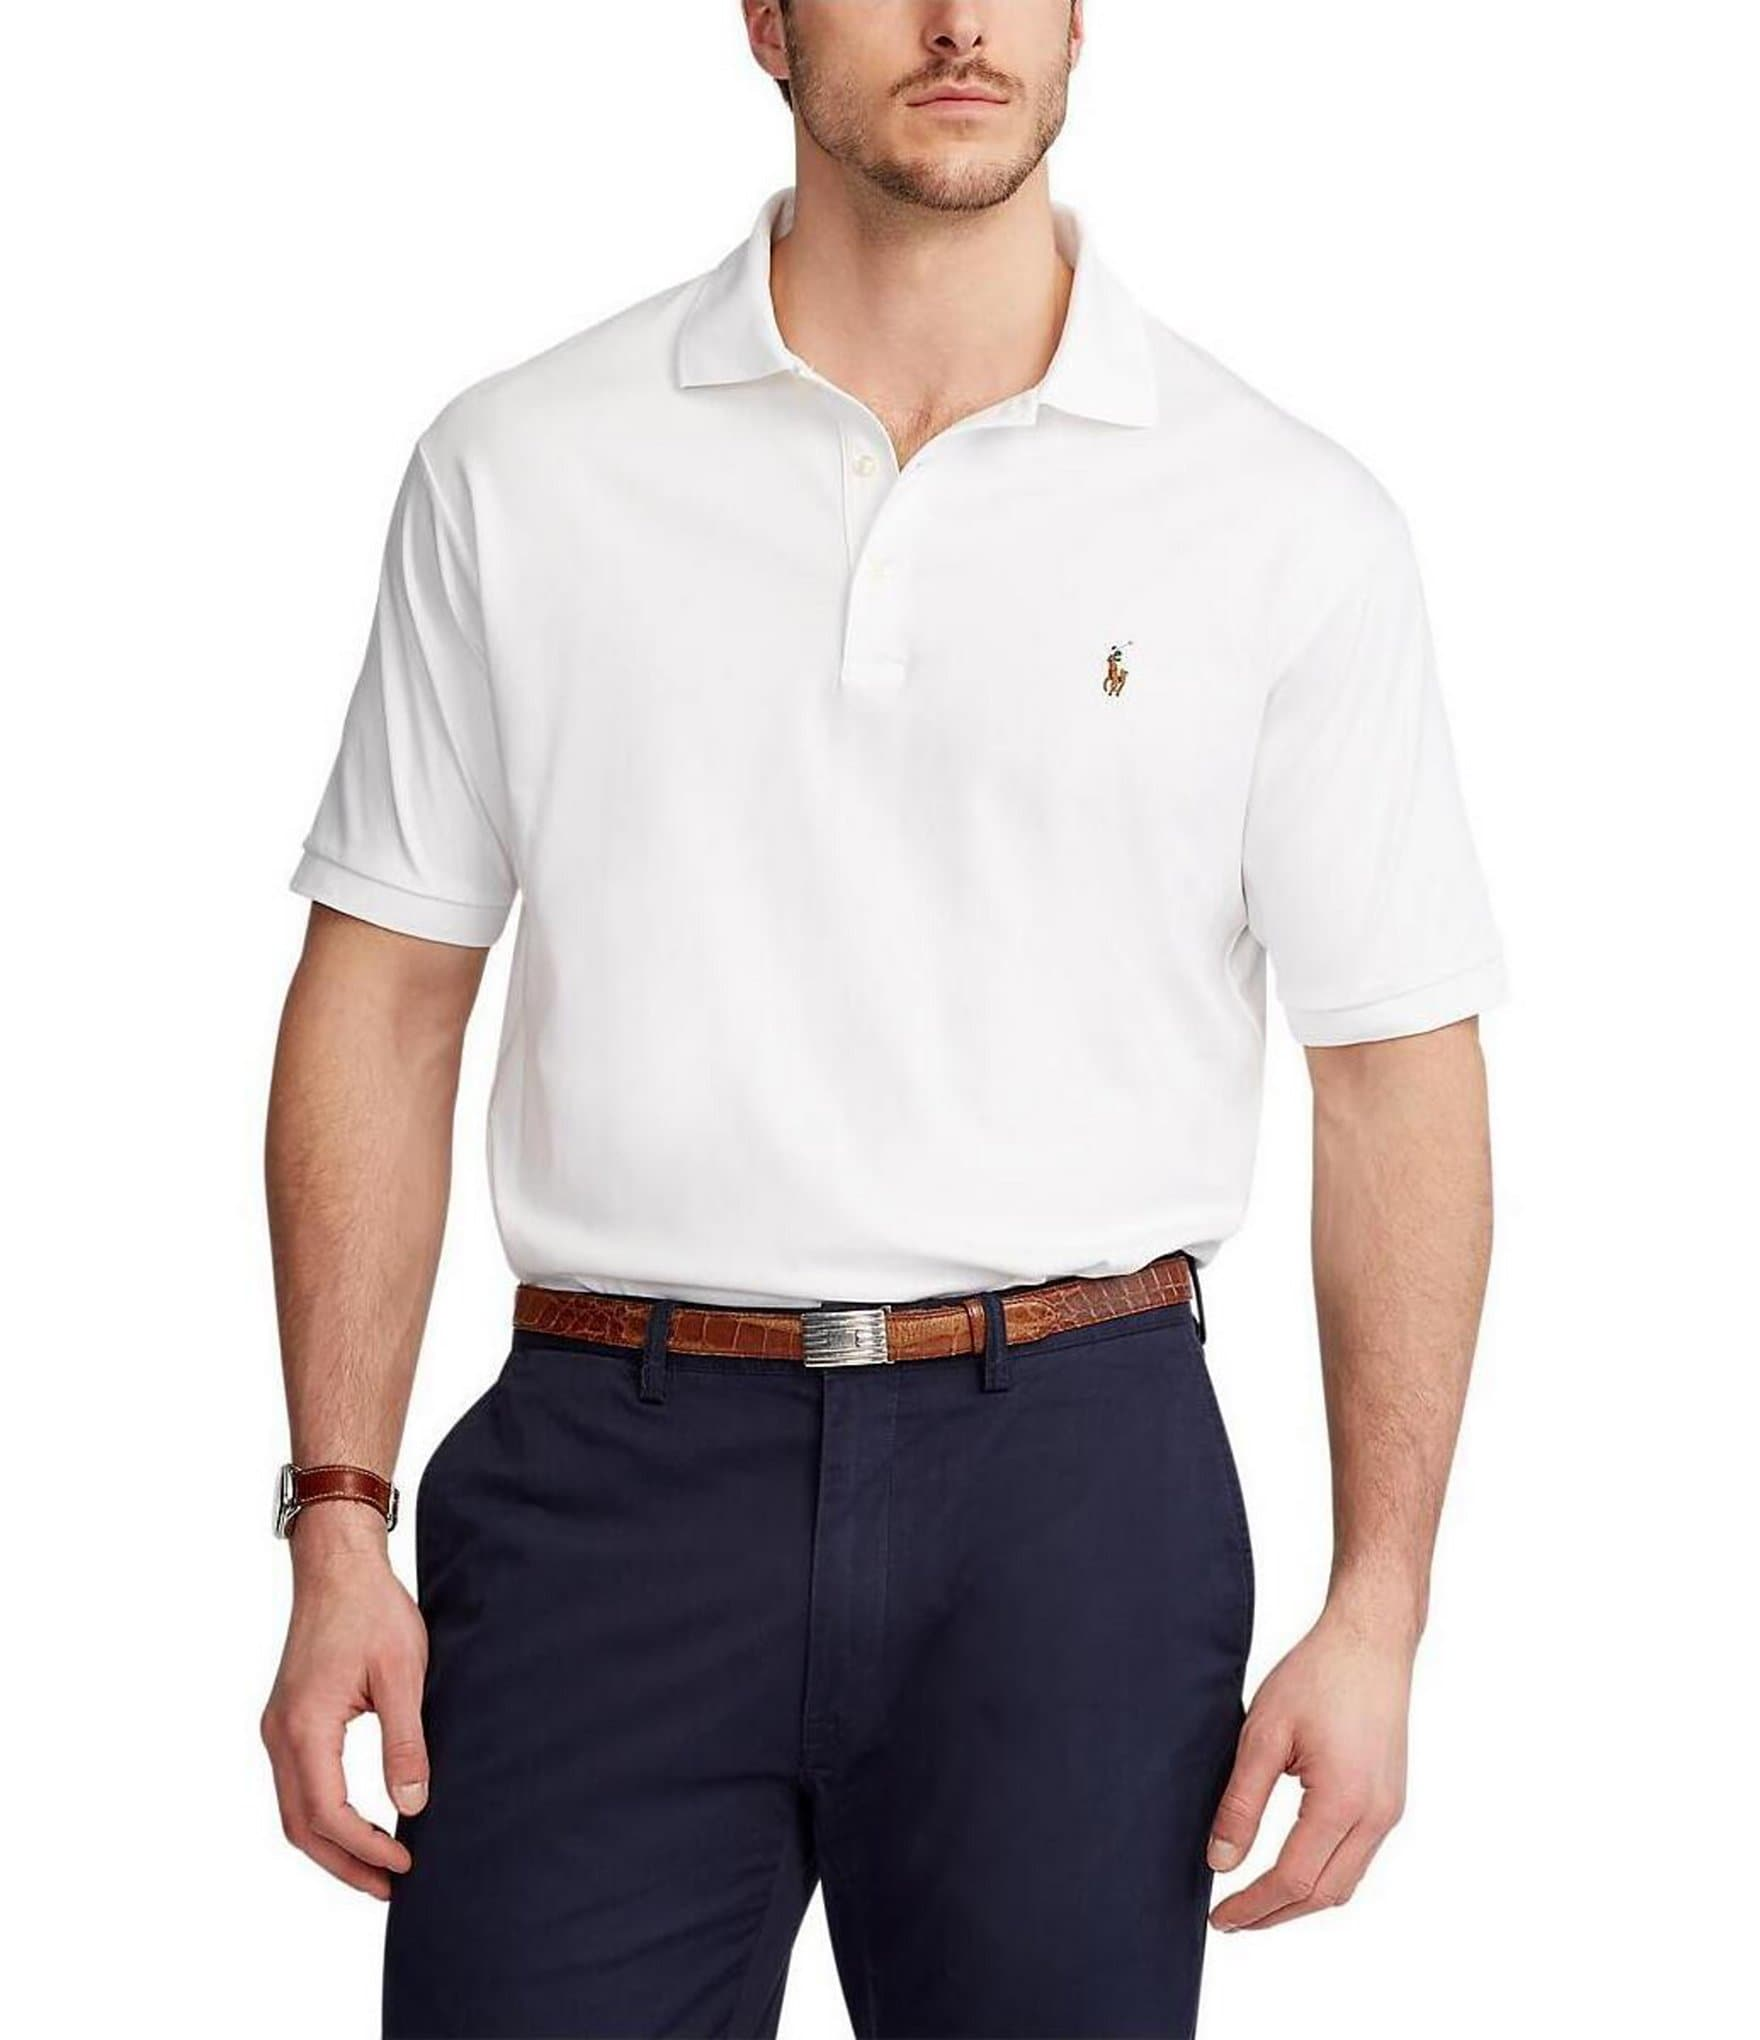 Polo Ralph Lauren Classic Fit Cotton Soft Short Sleeve